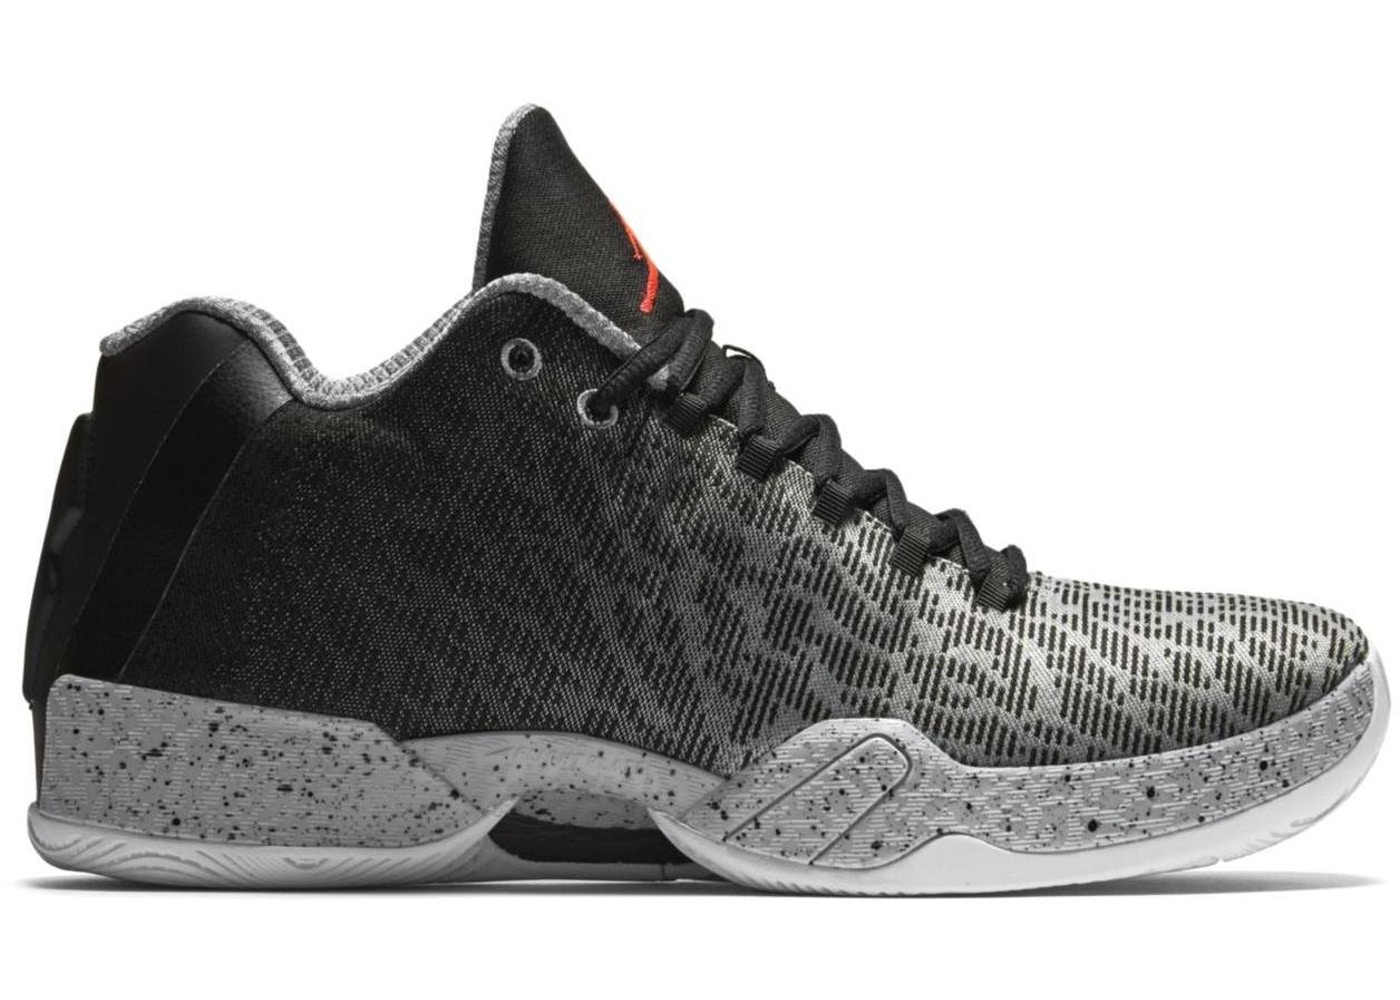 outlet store 1e8a7 cf399 Buy Air Jordan 29 Shoes   Deadstock Sneakers